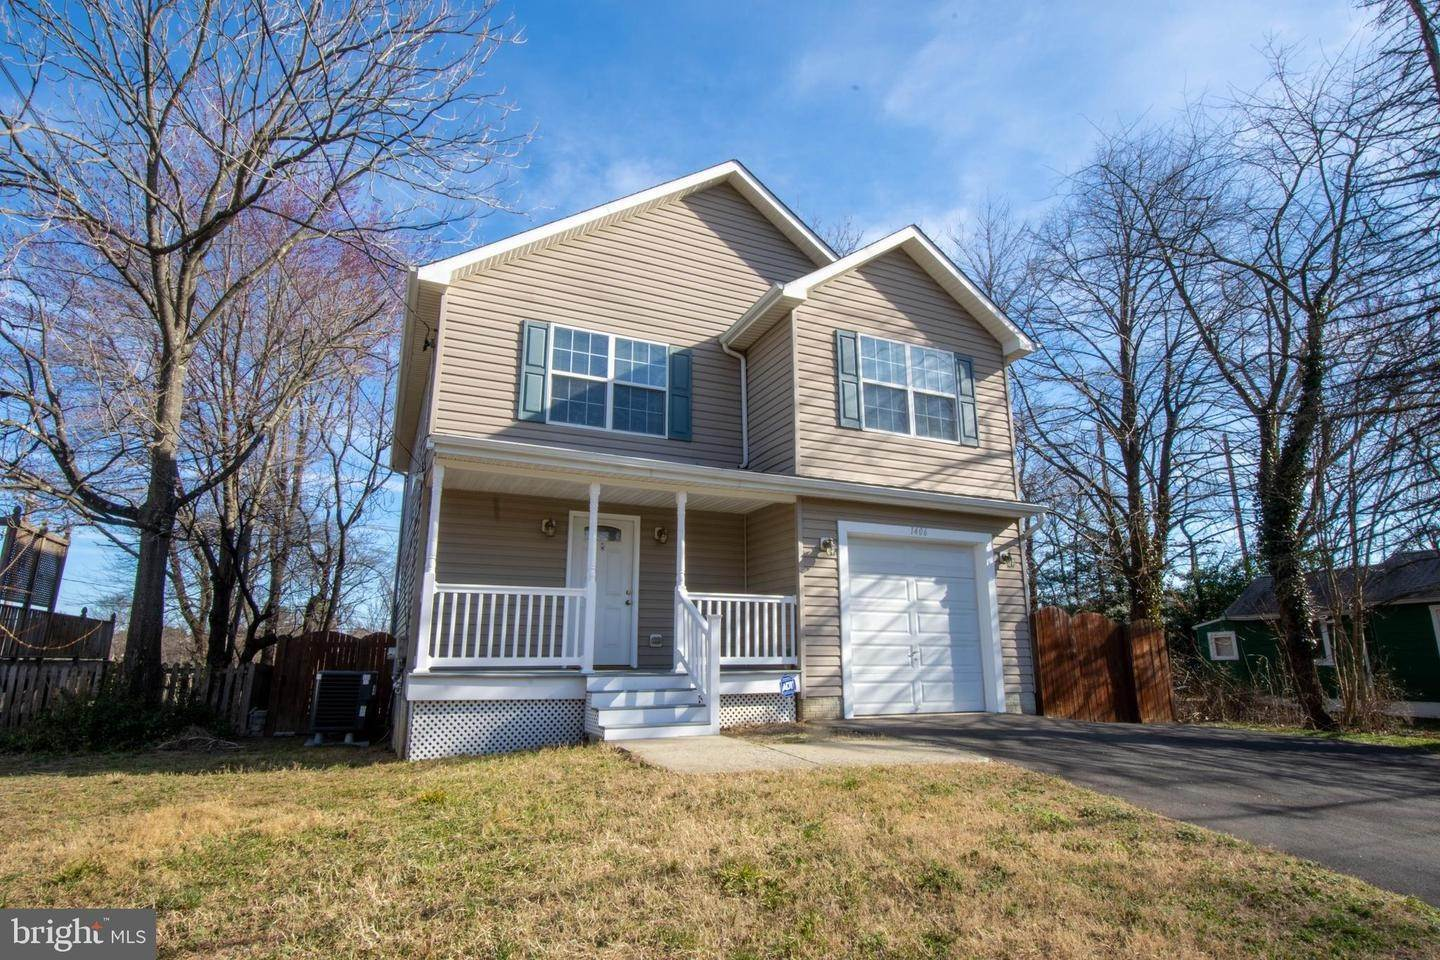 36. Single Family Homes om Odenton, Maryland, 21113 Verenigde Staten